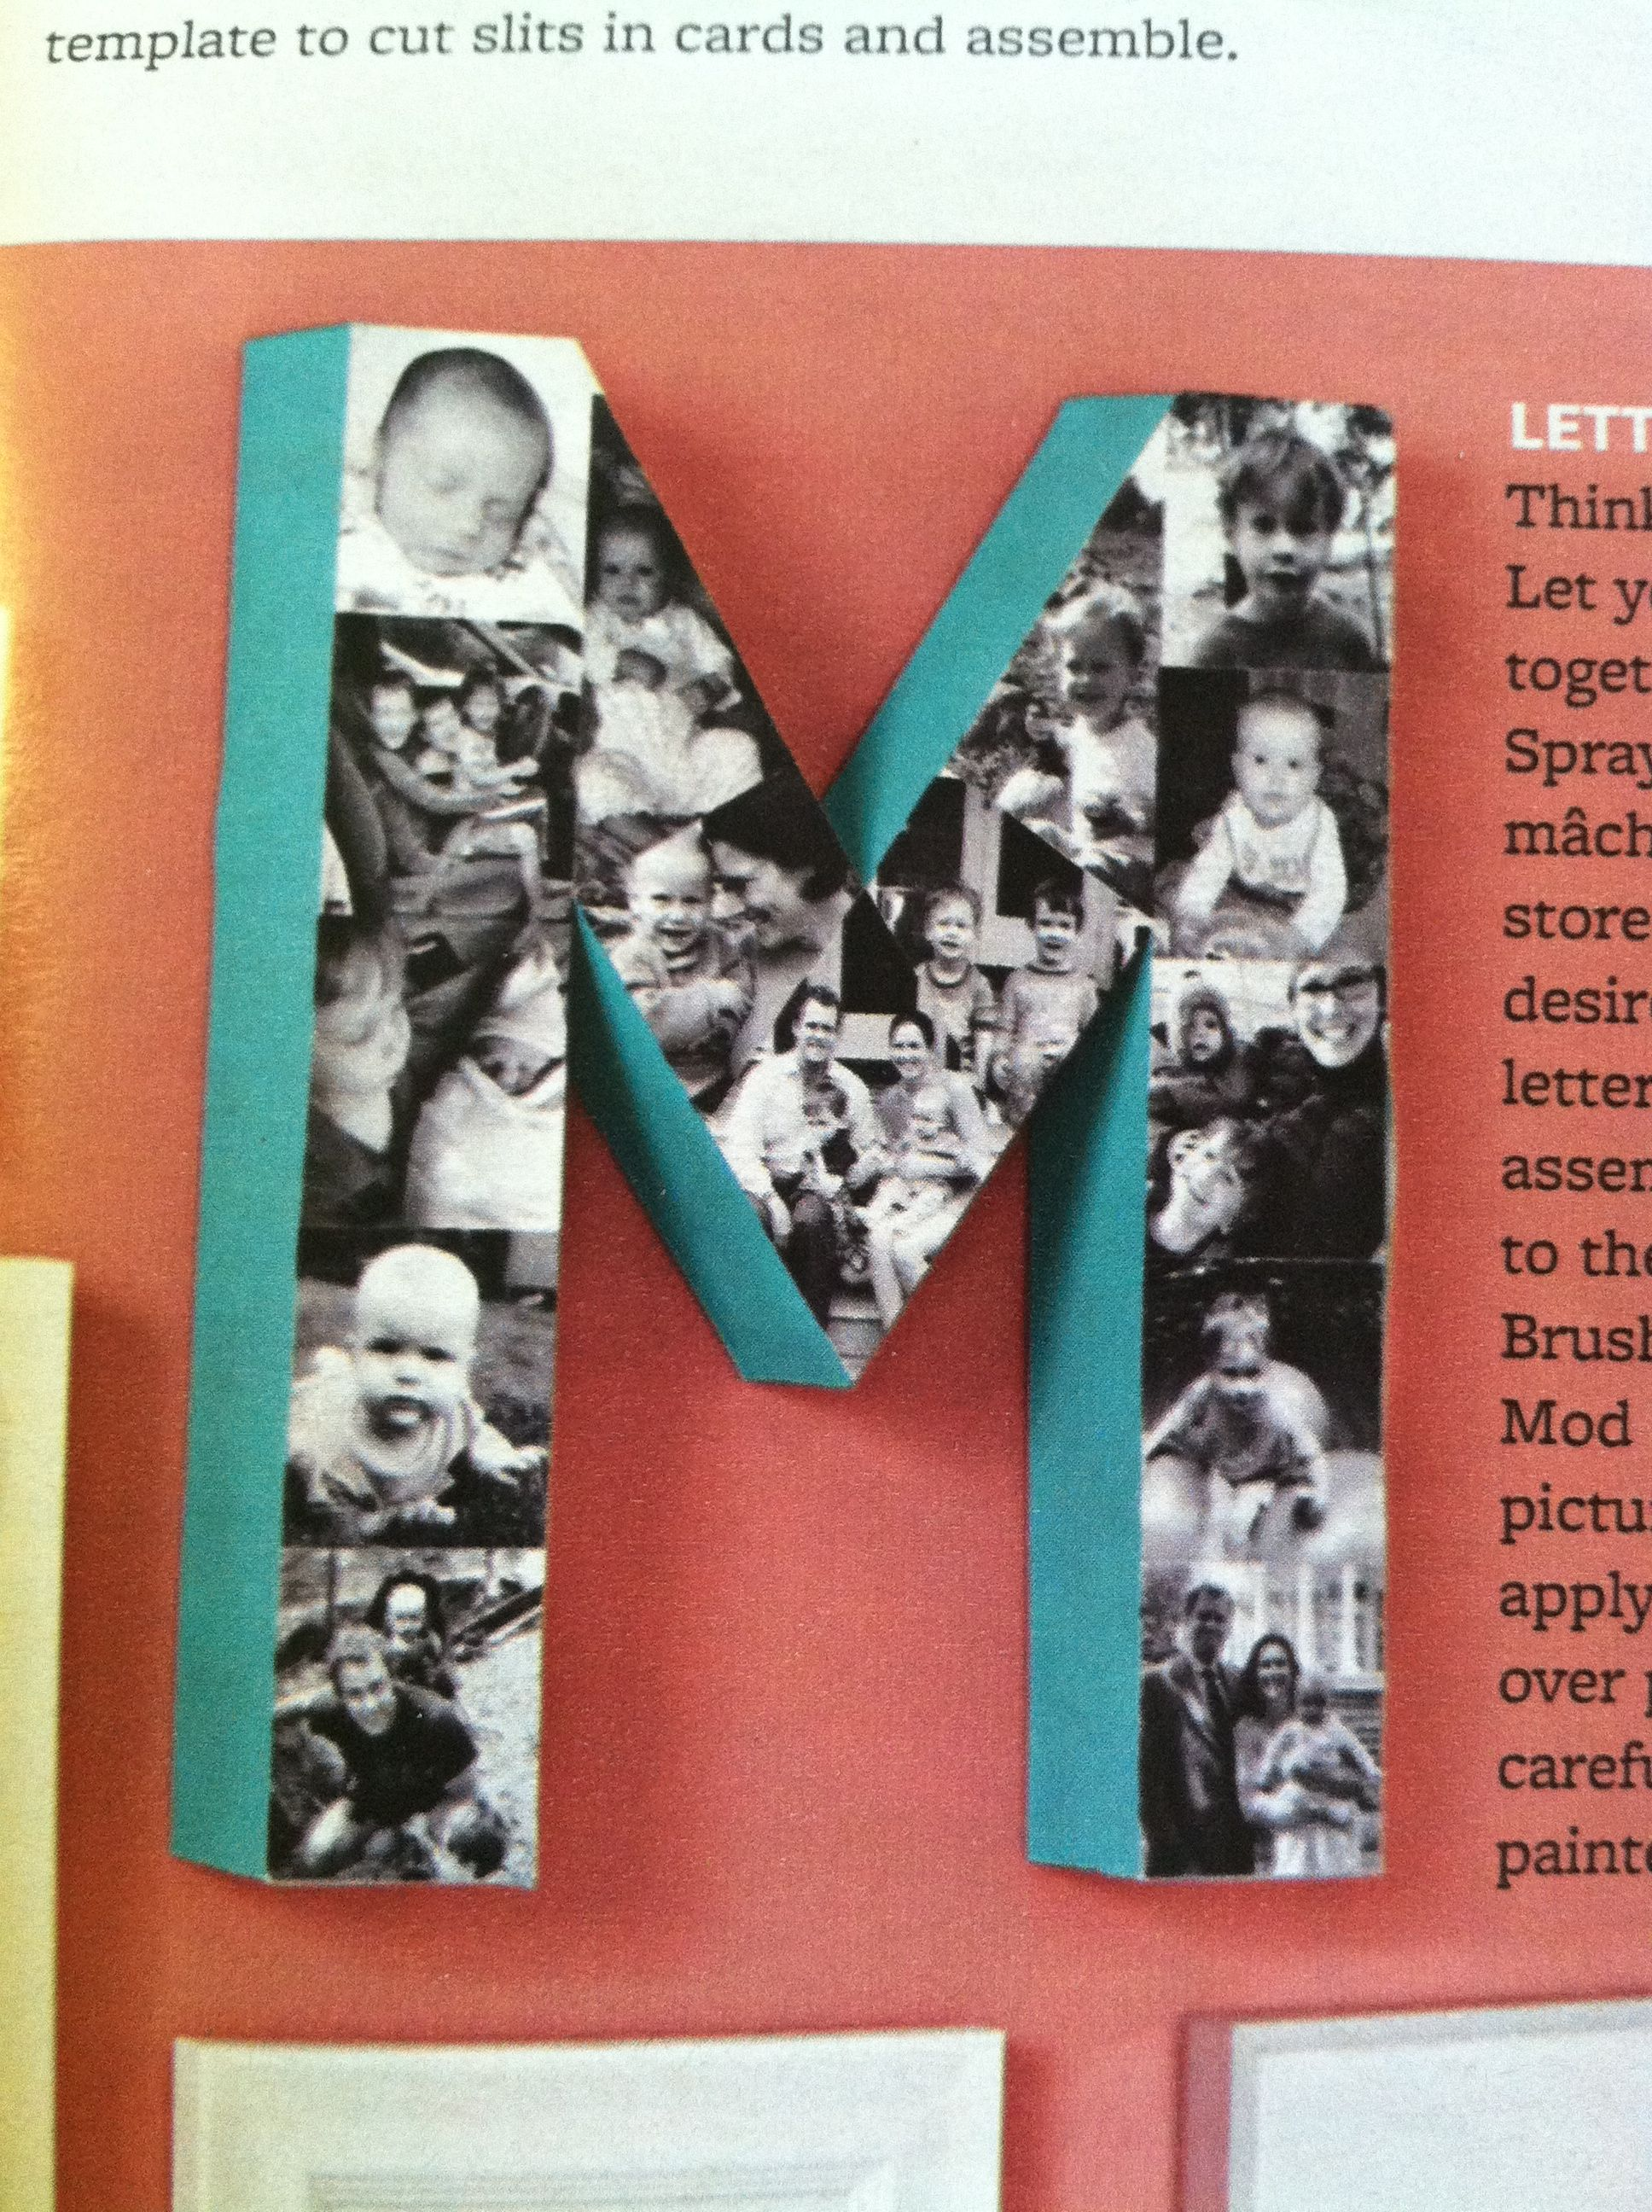 Spray paint a papier mâché letter from a crafts store. Lay pictures in desired order on top of letter, cutting to fit. To assemble, place pictures to the side in letter shape. Brush top of letter with Mod Podge, then place pictures. When finished, apply layer of Mod Podge over pictures only, being careful not to get it on painted part of letter.